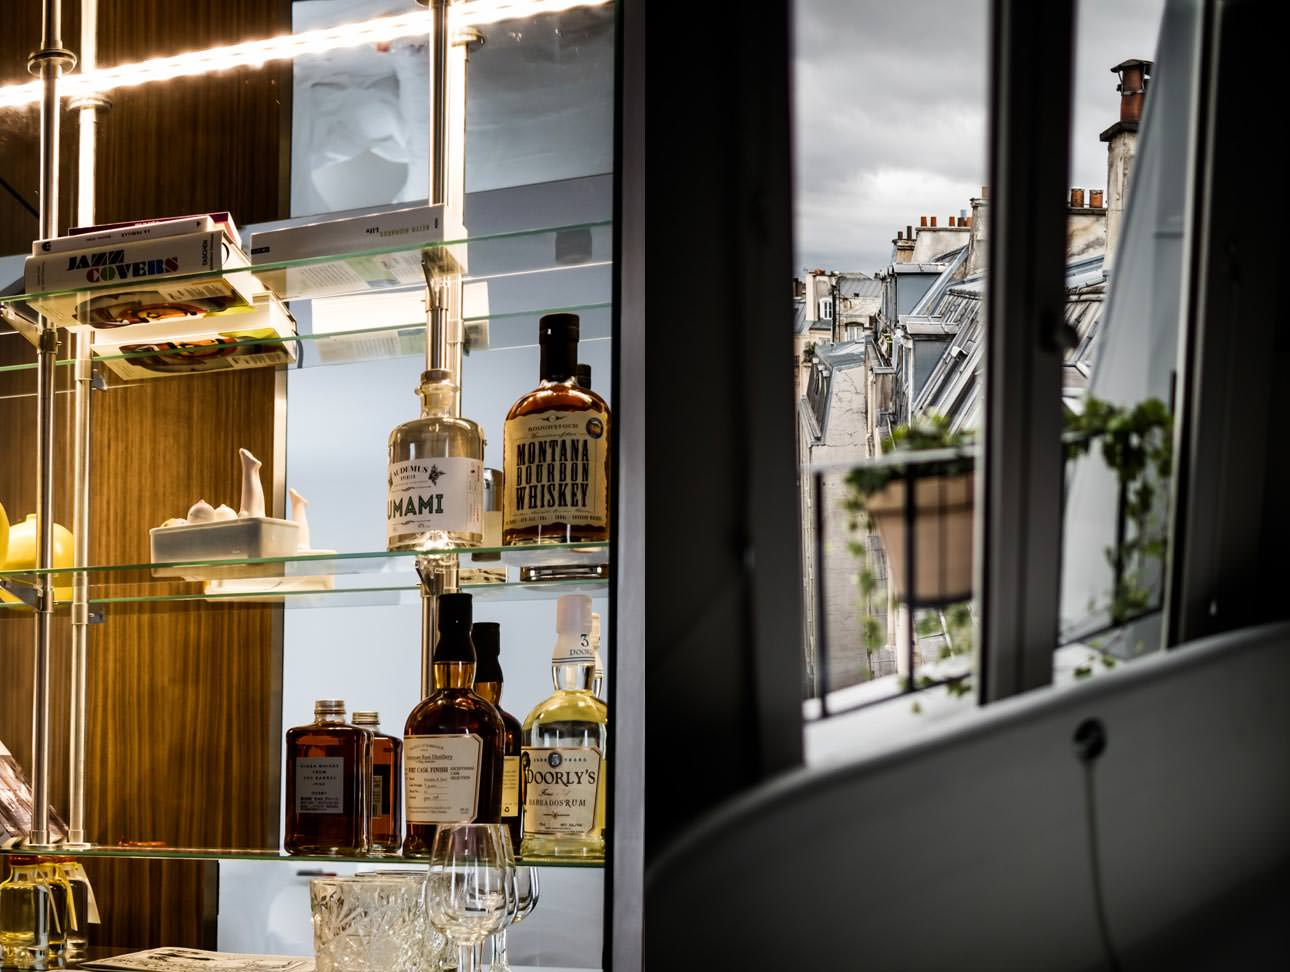 le-pigalle-hotel-minibar-room-with-view-paris